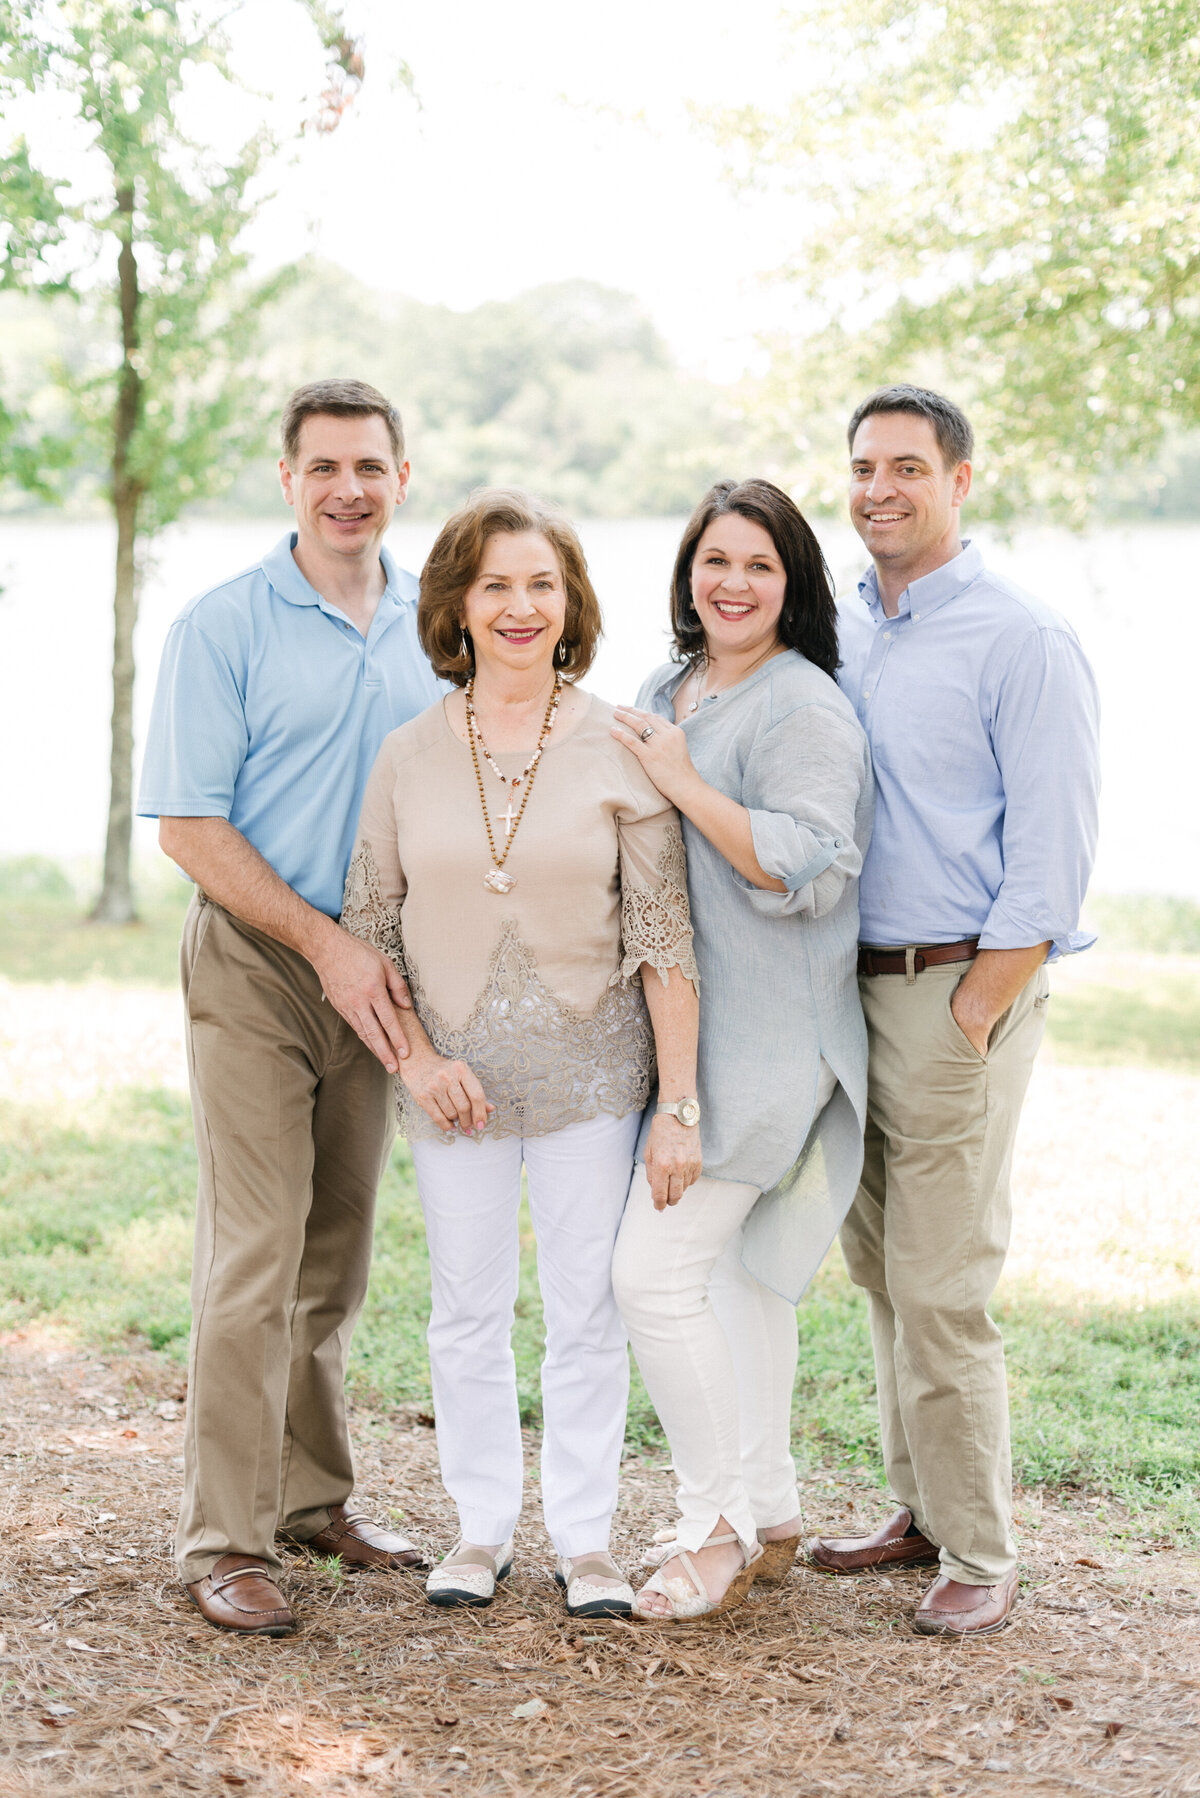 family-photographer-virginia-beach-tonya-volk-photography-24